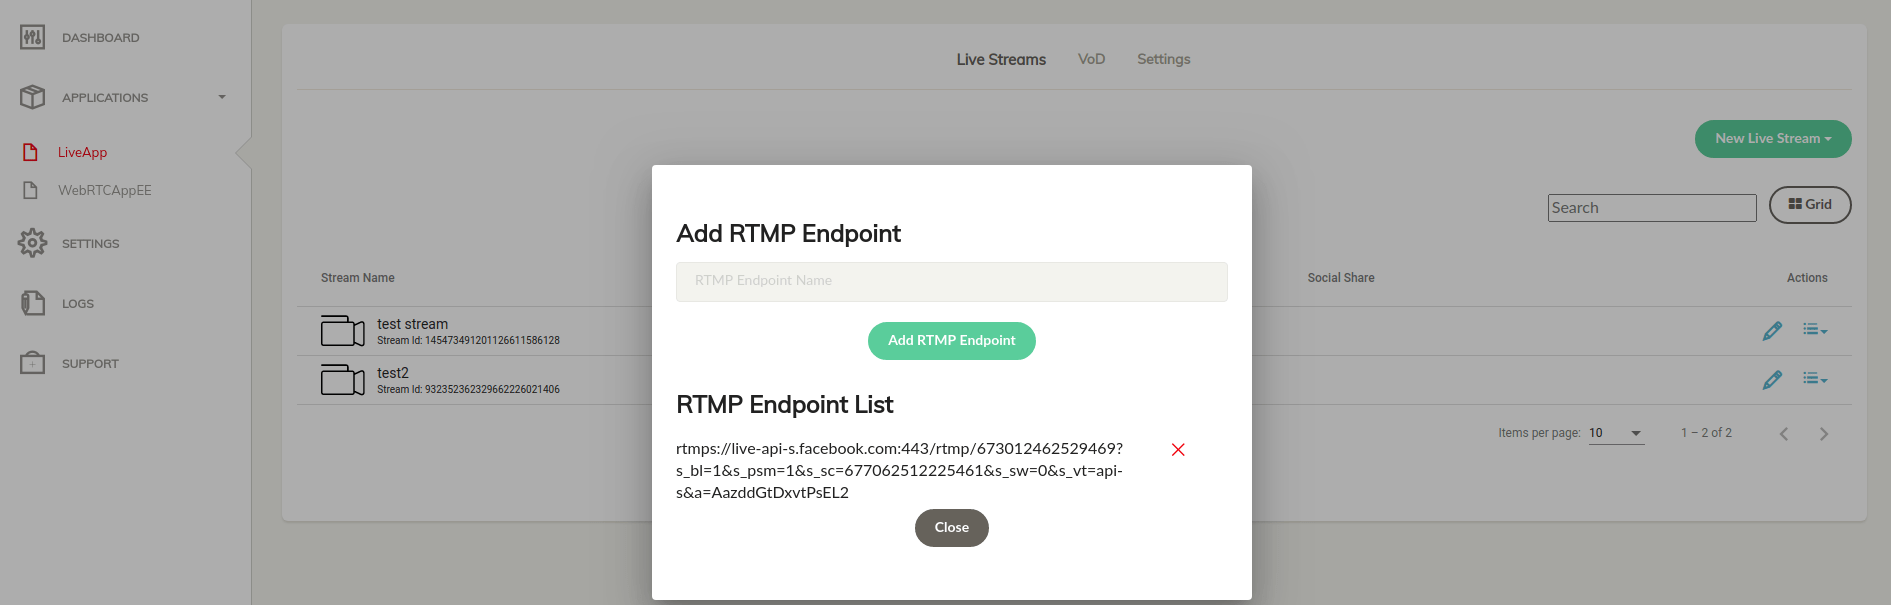 ant-media-dashboard-add-facebook-rtmp-endpoint